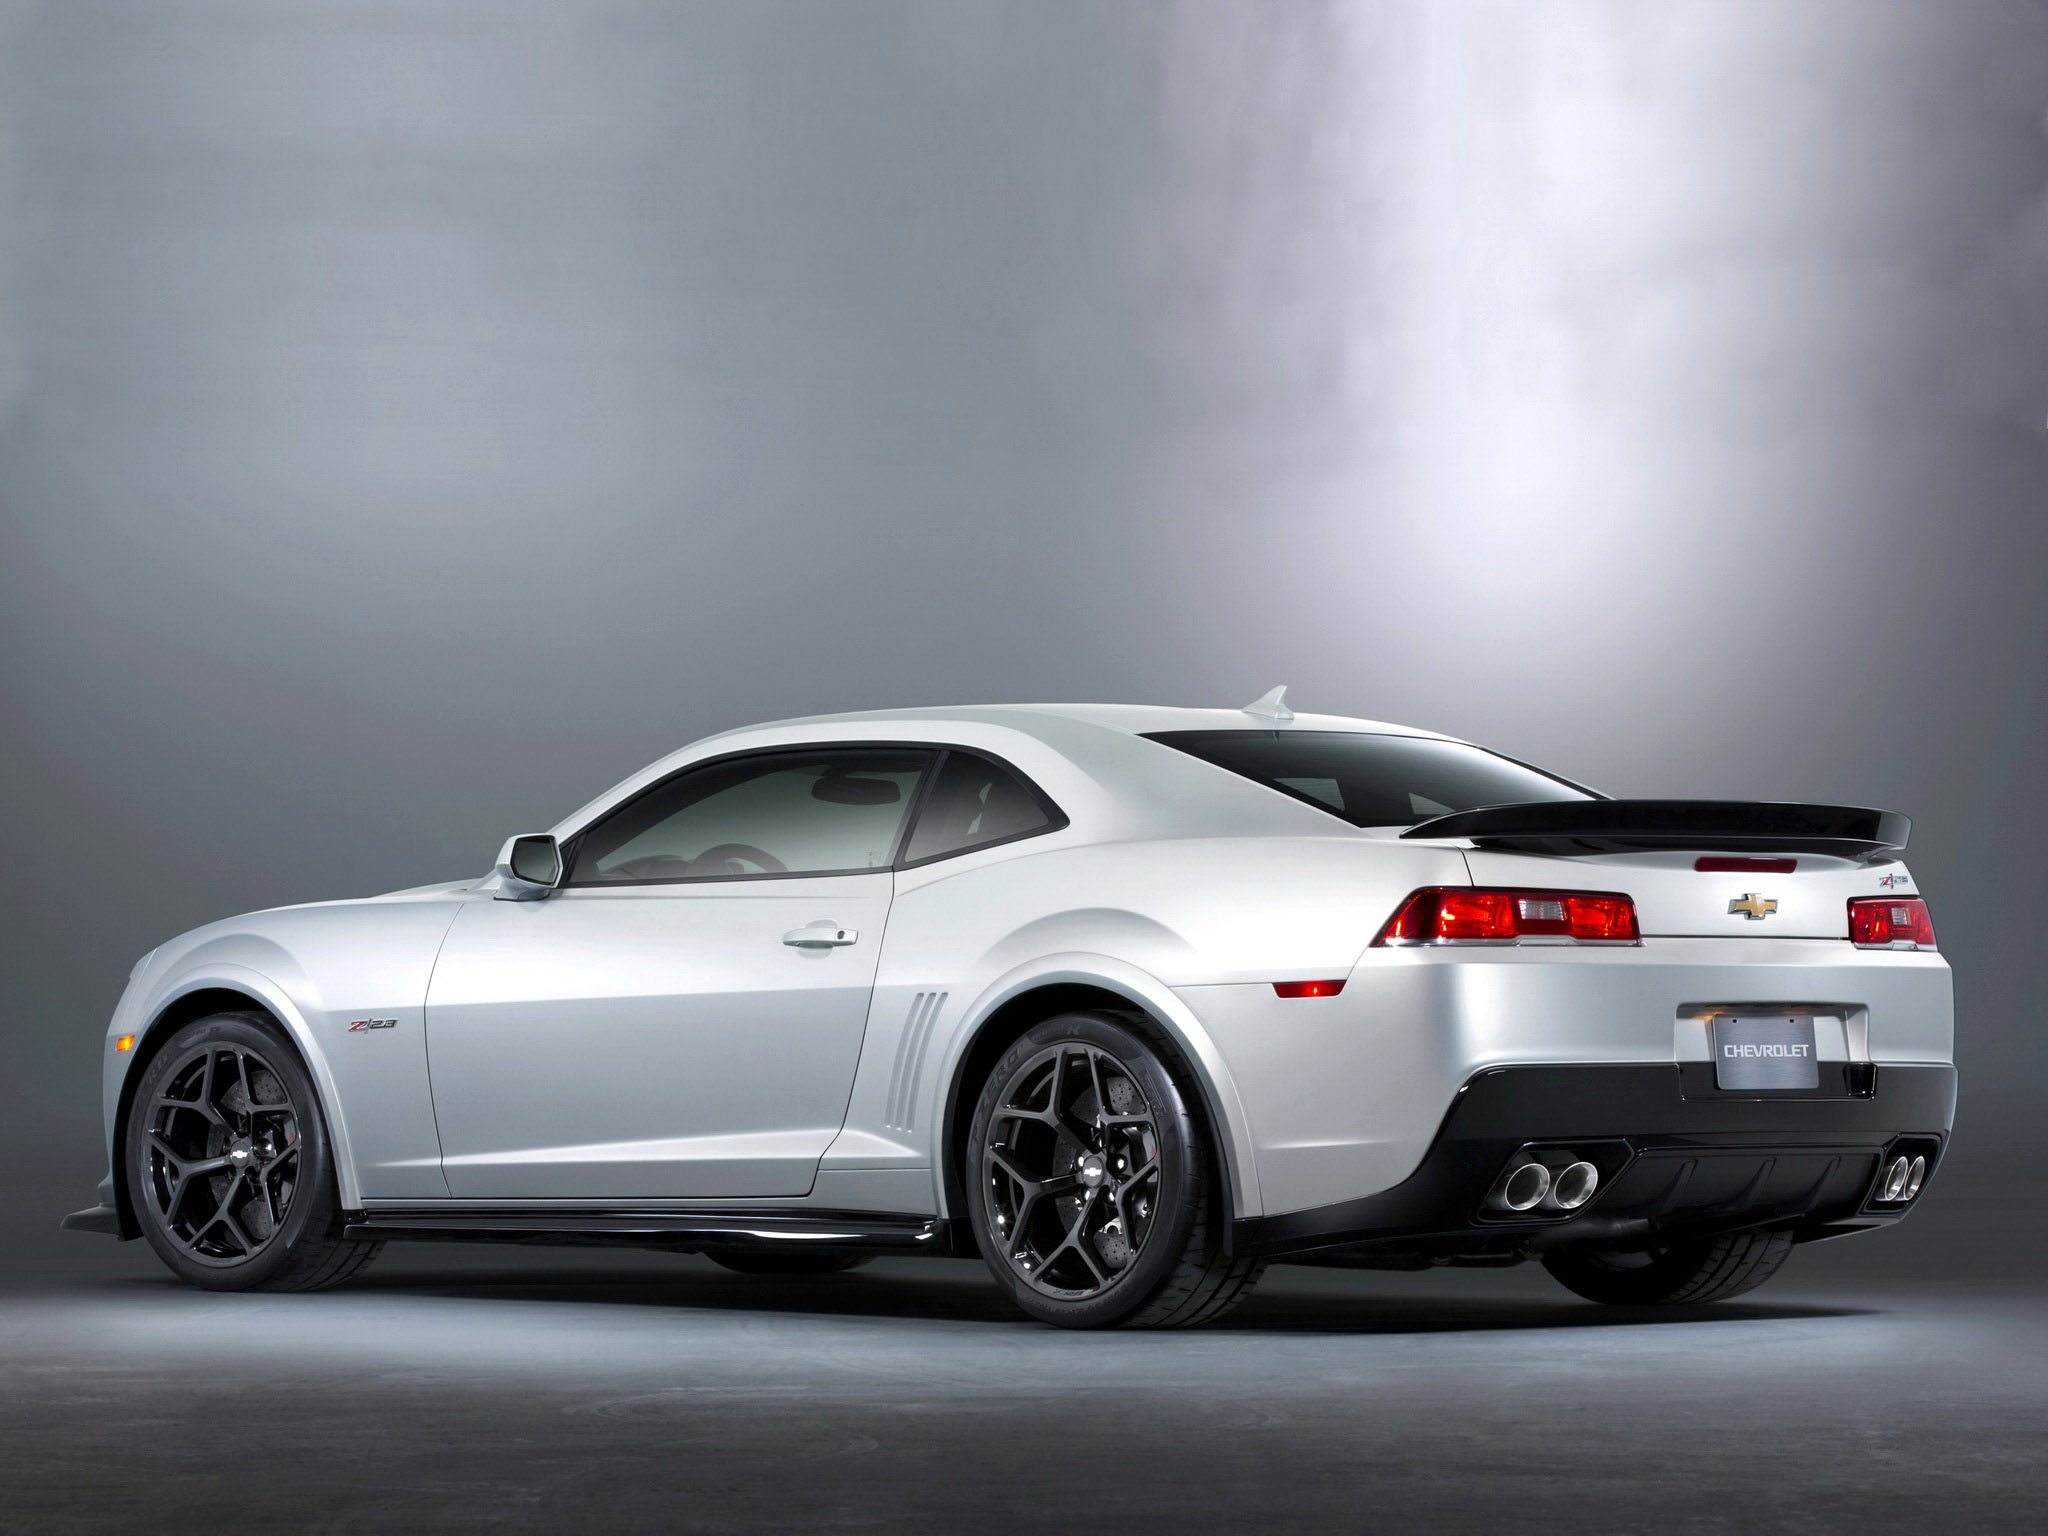 2017 Chevrolet Camaro Z28 photo - 4